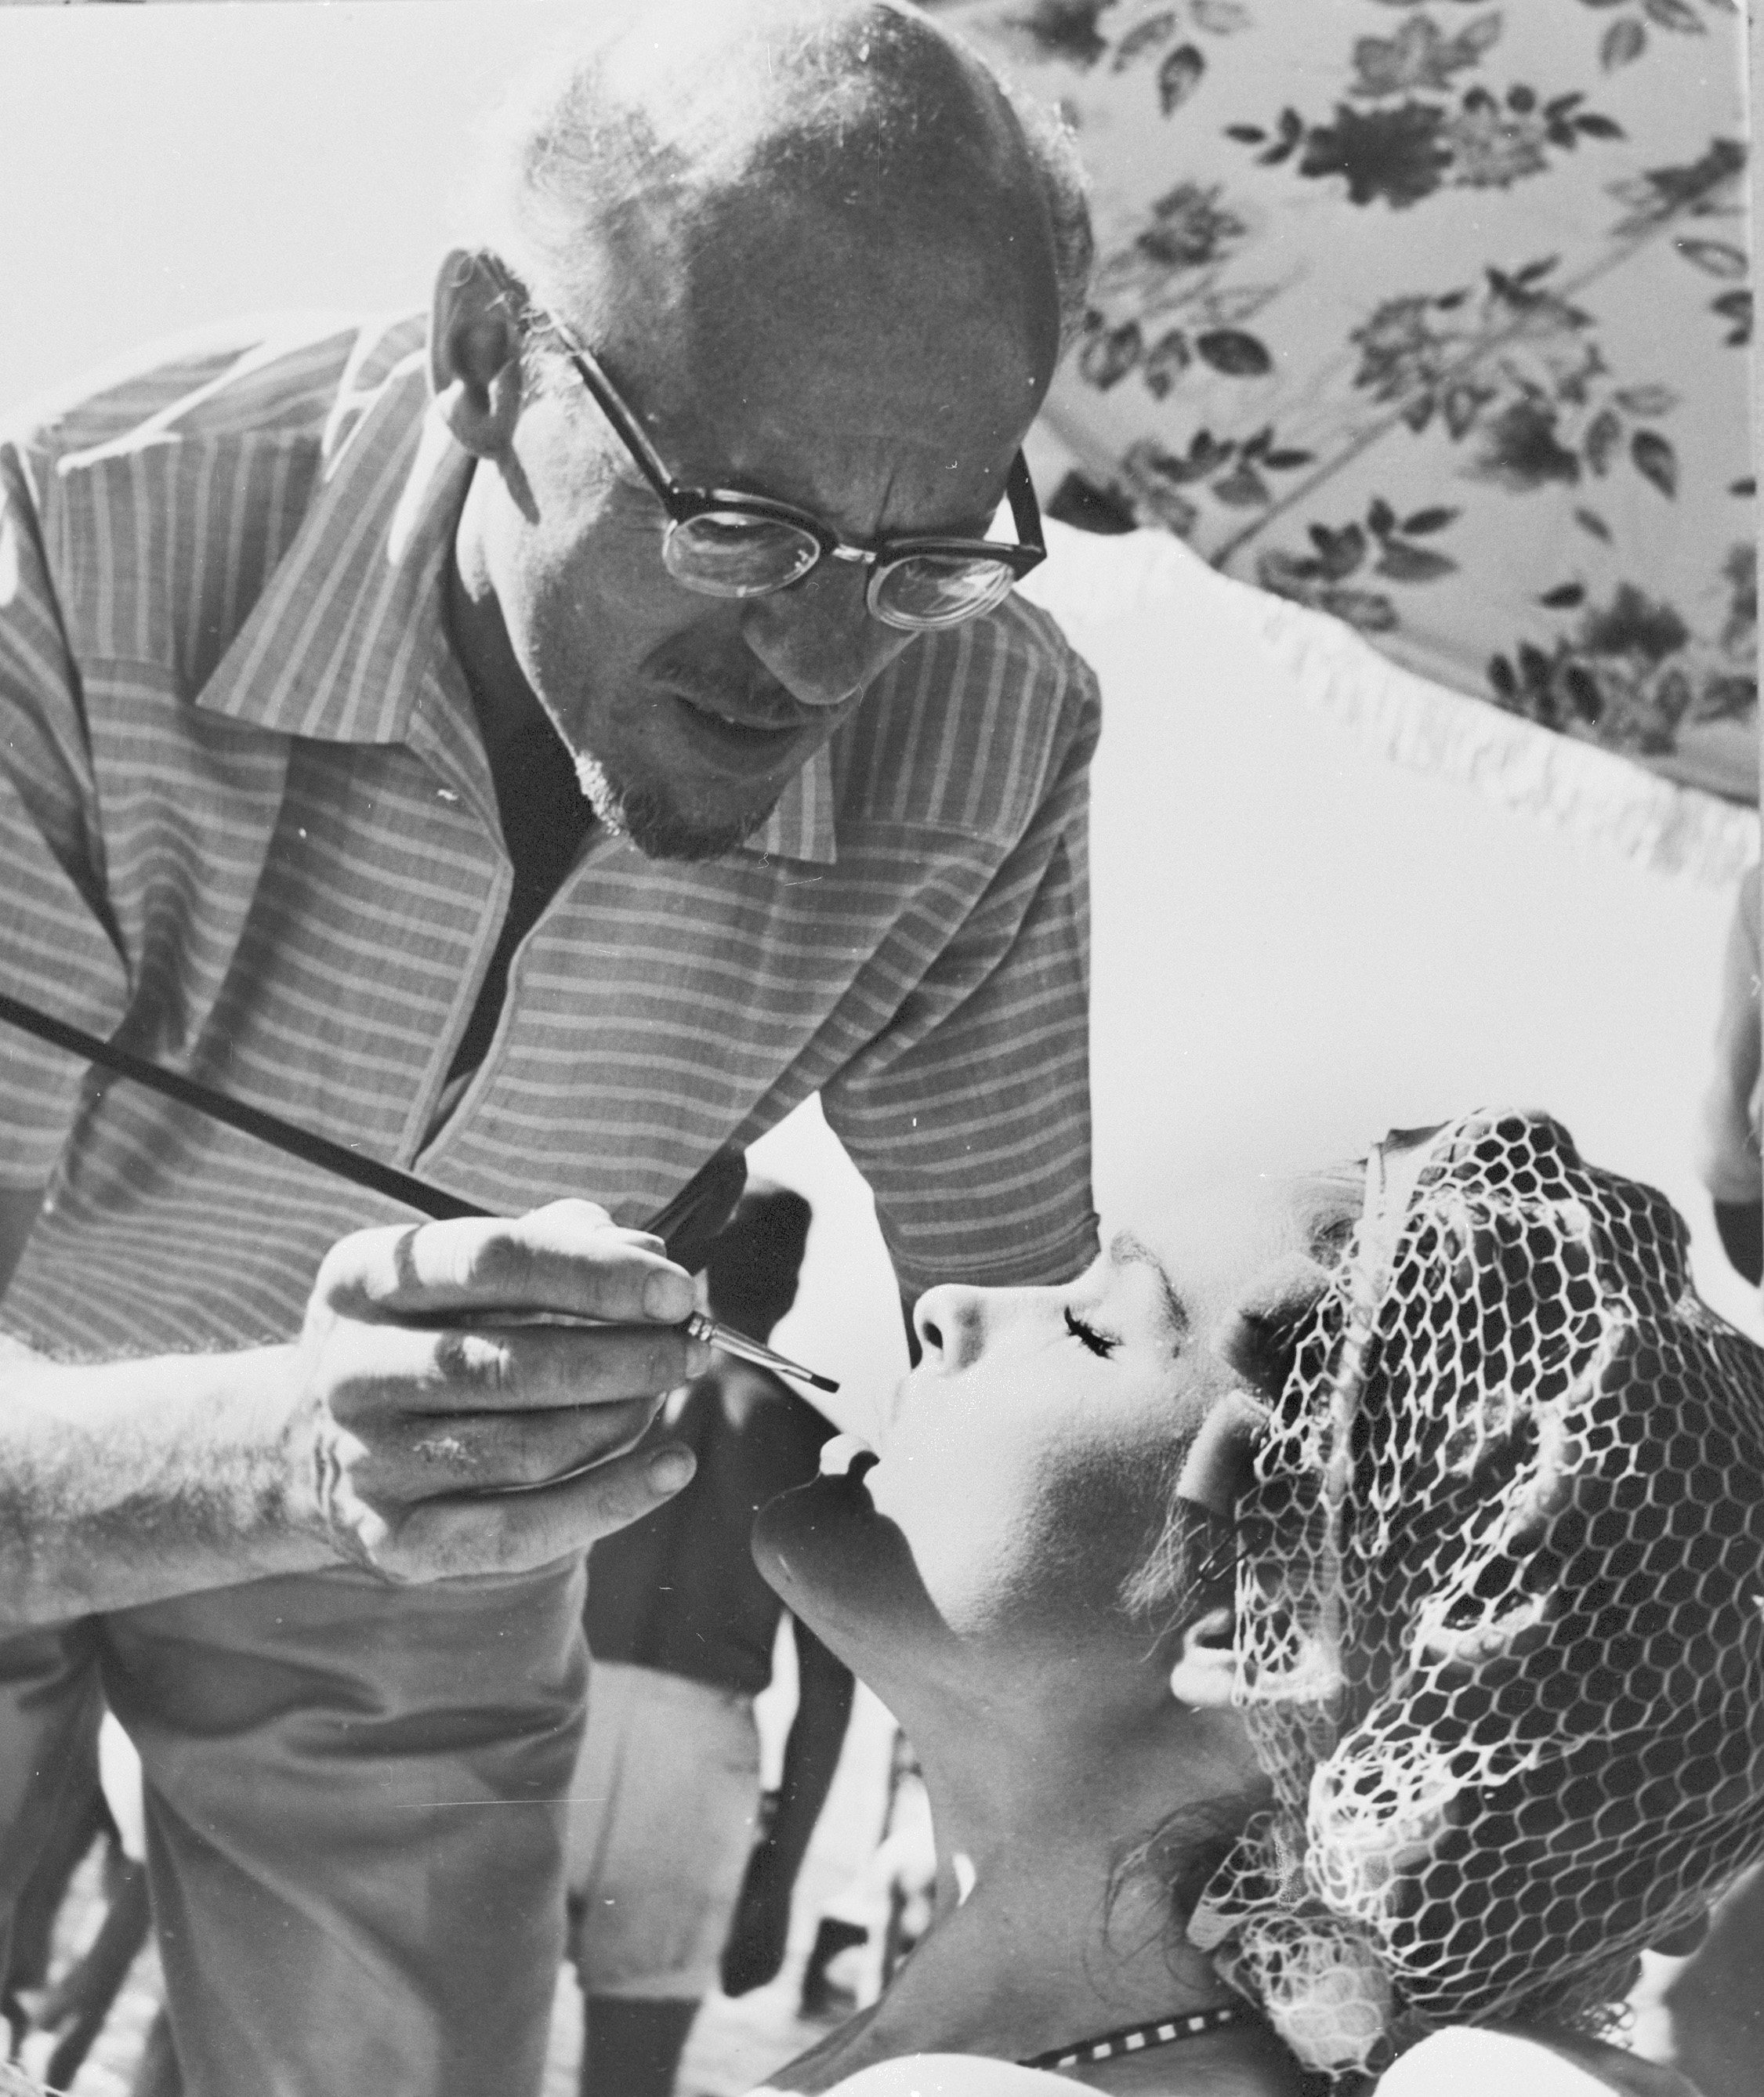 """Movie makeup man John O'Gorman uses a lipstick brush in preparing actress Ursula Andress for her starring role in """"Dr. No"""", on location in Jamaica, British West Indies, May 17, 1962. The heat and tropical atmosphere of Jamaica caused quite a problem for John O'Gorman and his staff. the make-up started to run so quickly that he had to on guard every moment to touch up the principals between shots. (AP Photo)"""